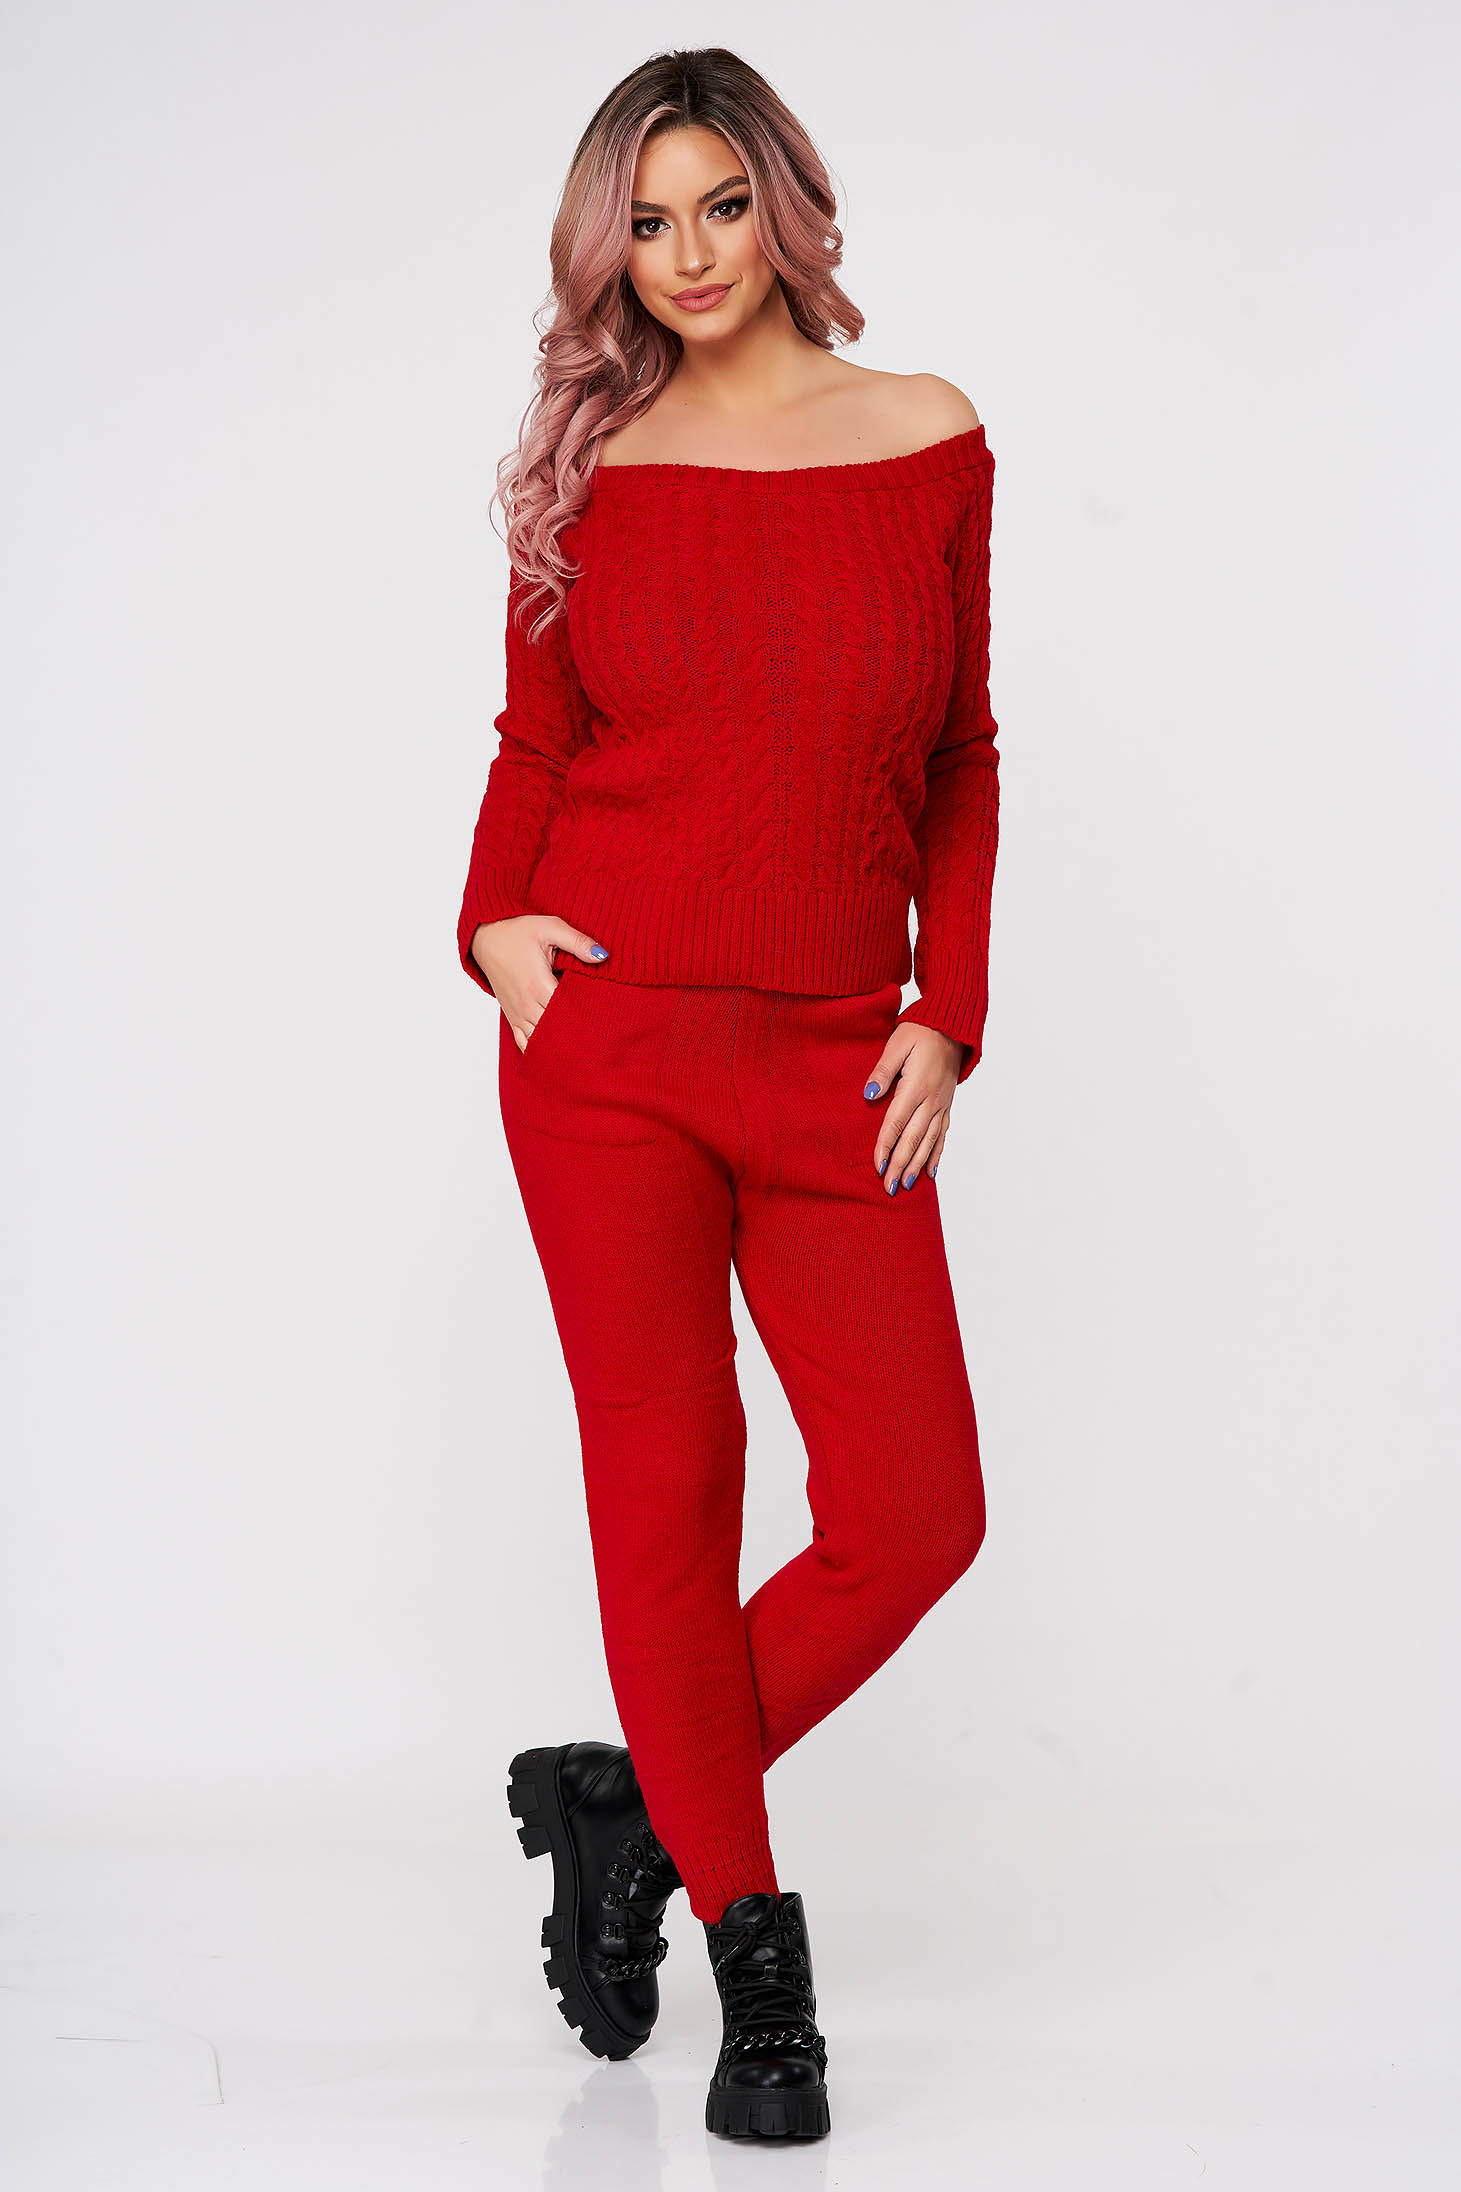 Red sport 2 pieces knitted from two pieces from braided fabric casual